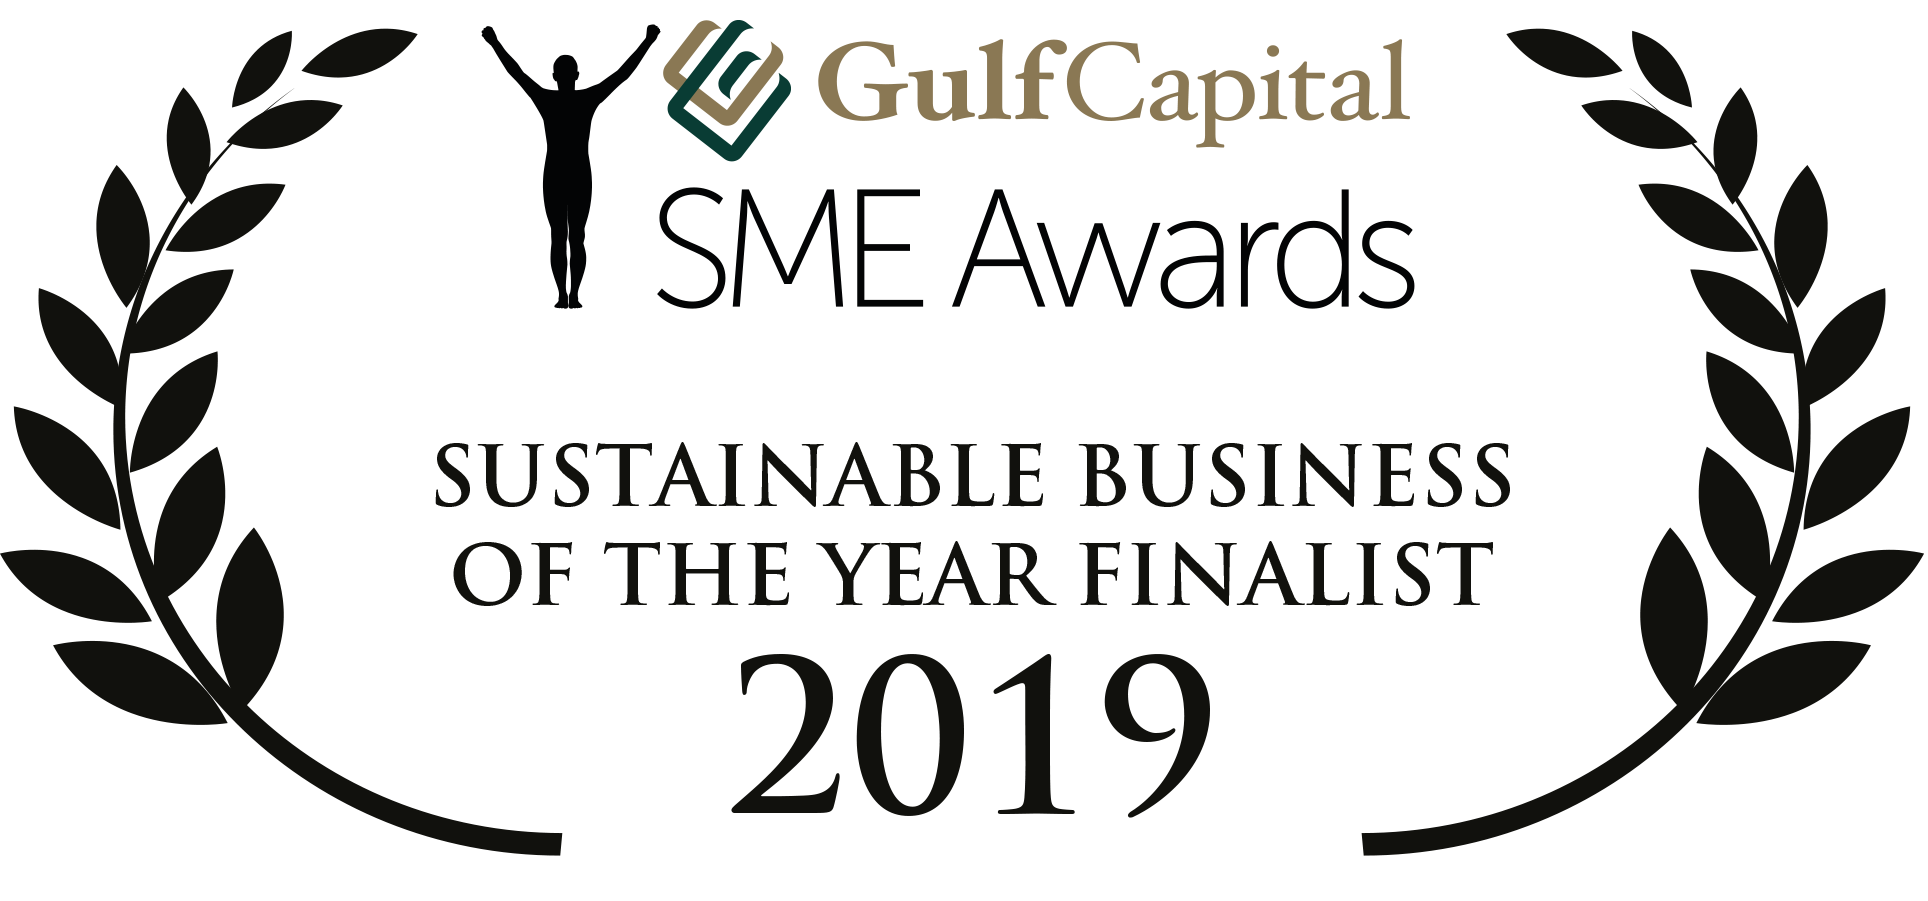 2019 Gulf Capital SME Awards Sustainable Business of the year Enerwhere